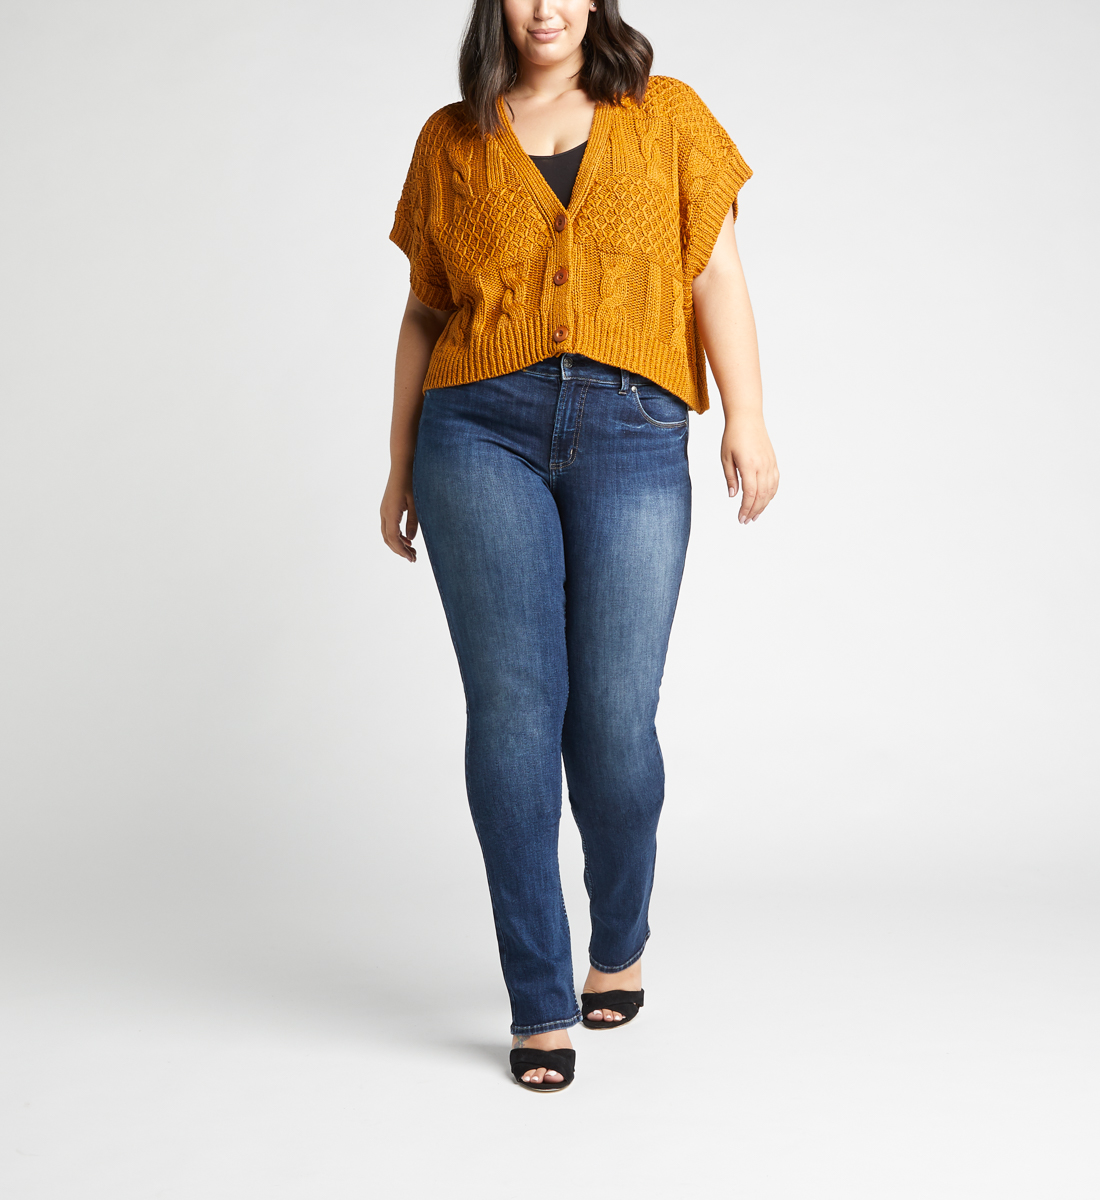 Most Wanted Mid Rise Skinny Bootcut Plus Size Jeans Front